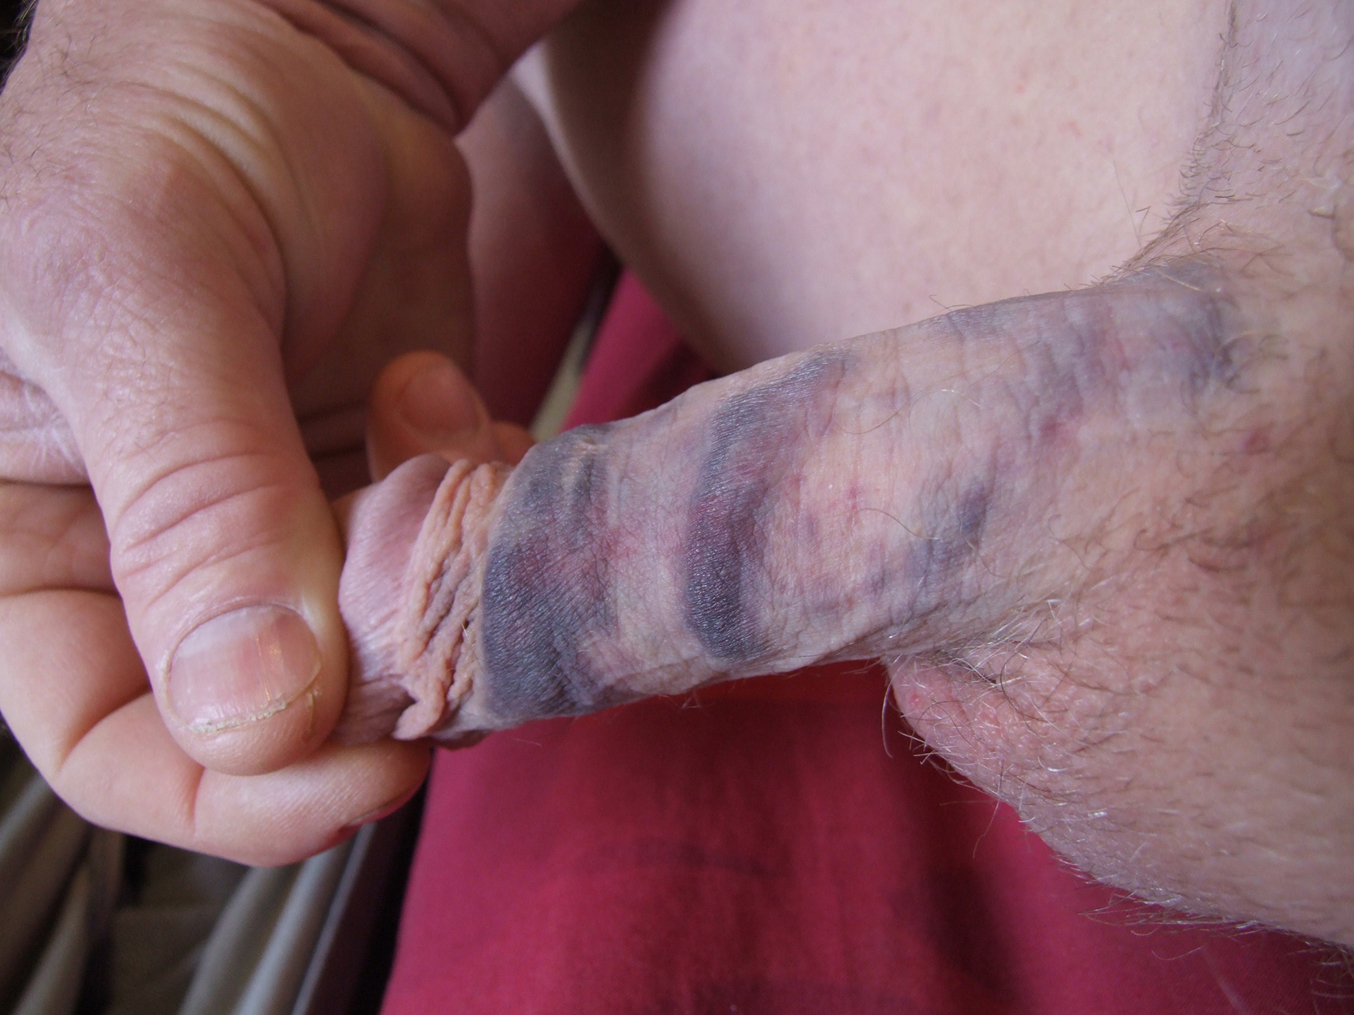 Bruise On Penis 99